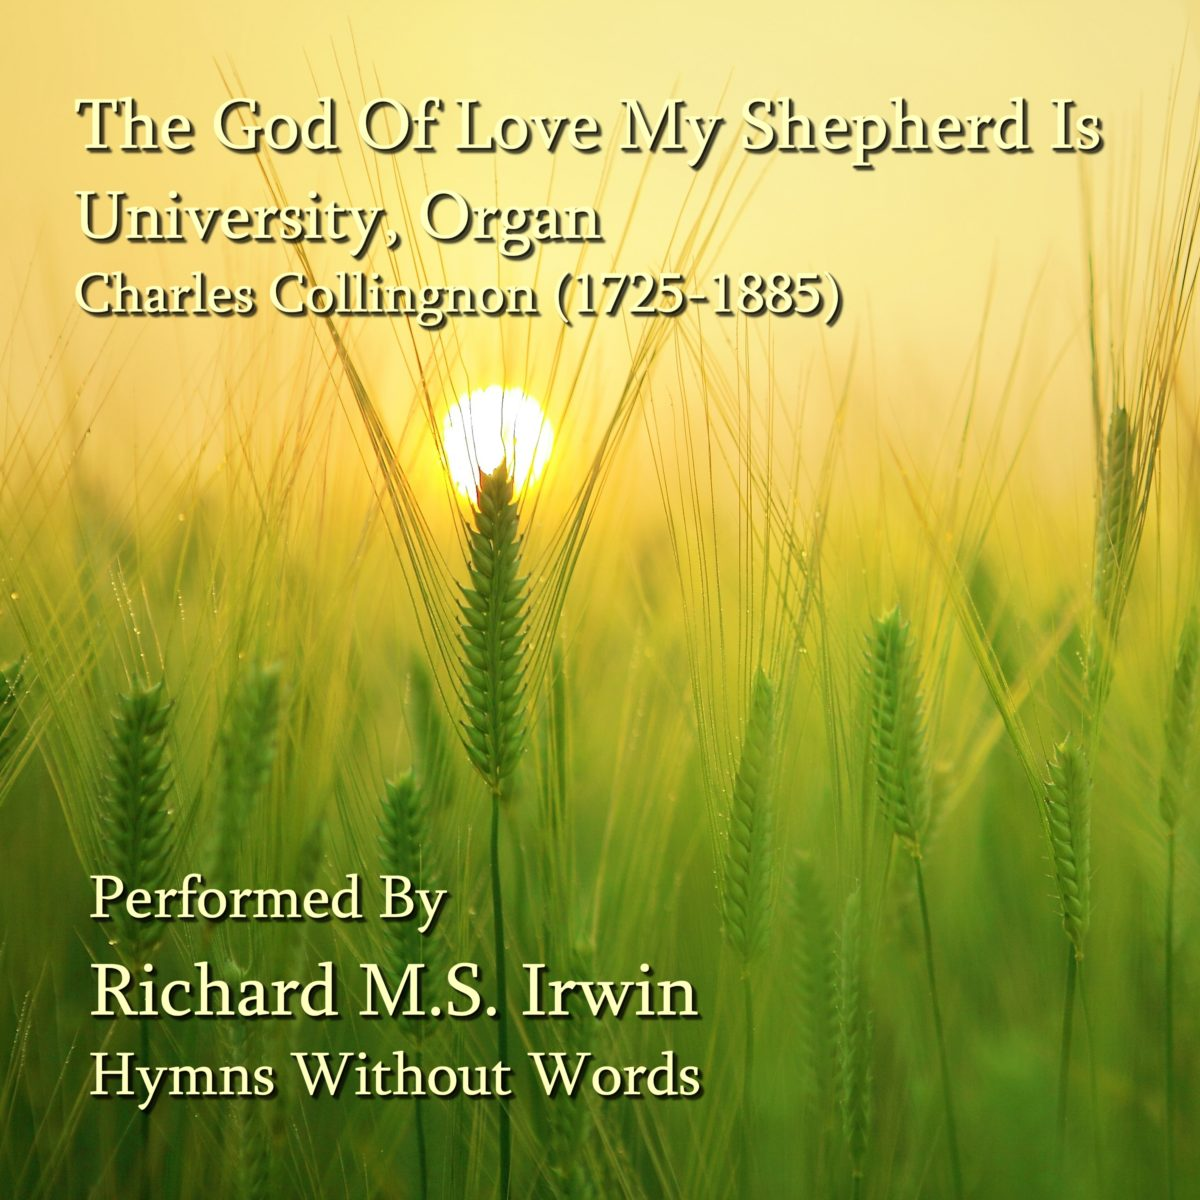 The God Of Love My Shepherd Is